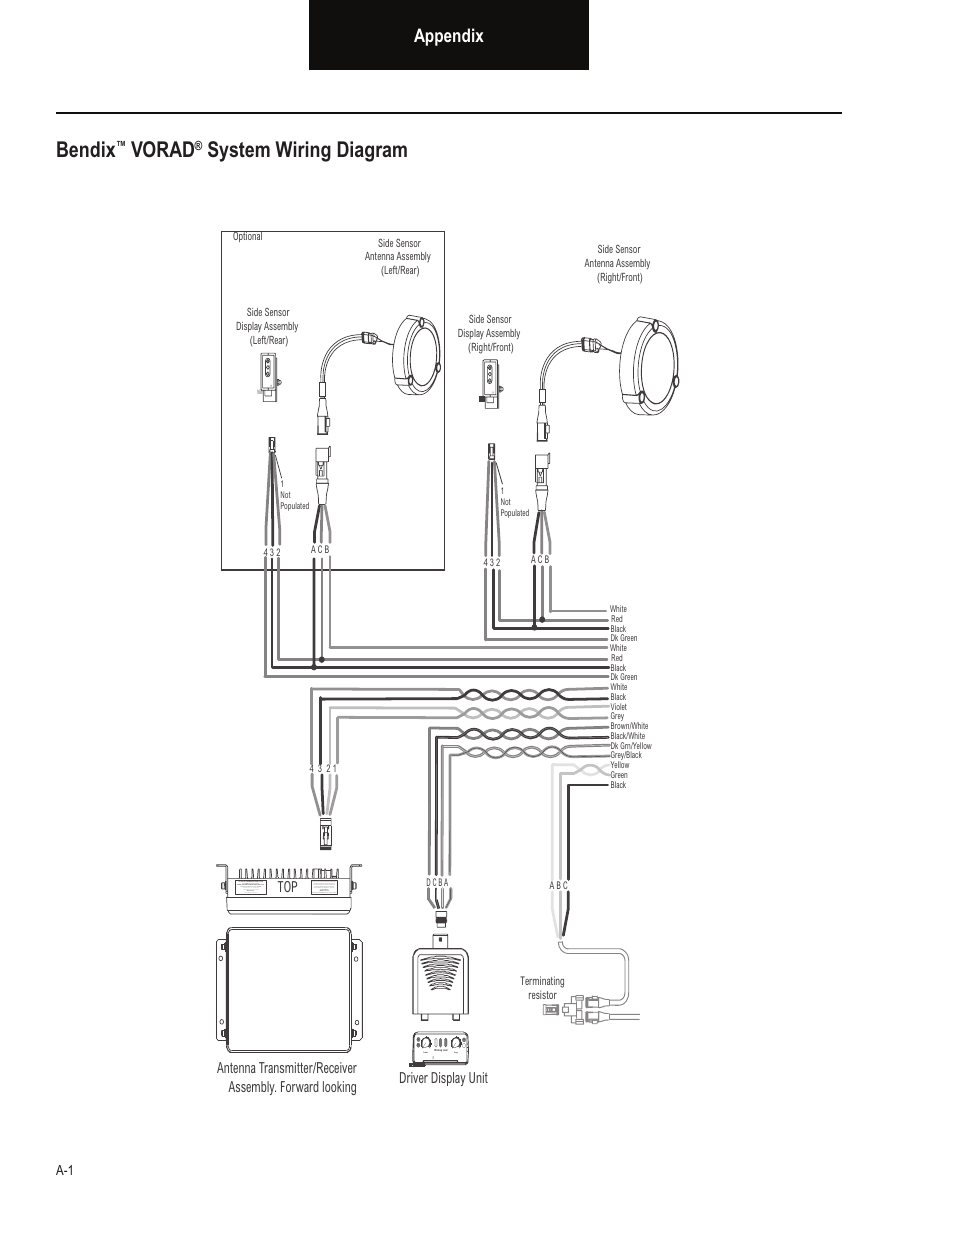 3 wire inte systems wiring diagram